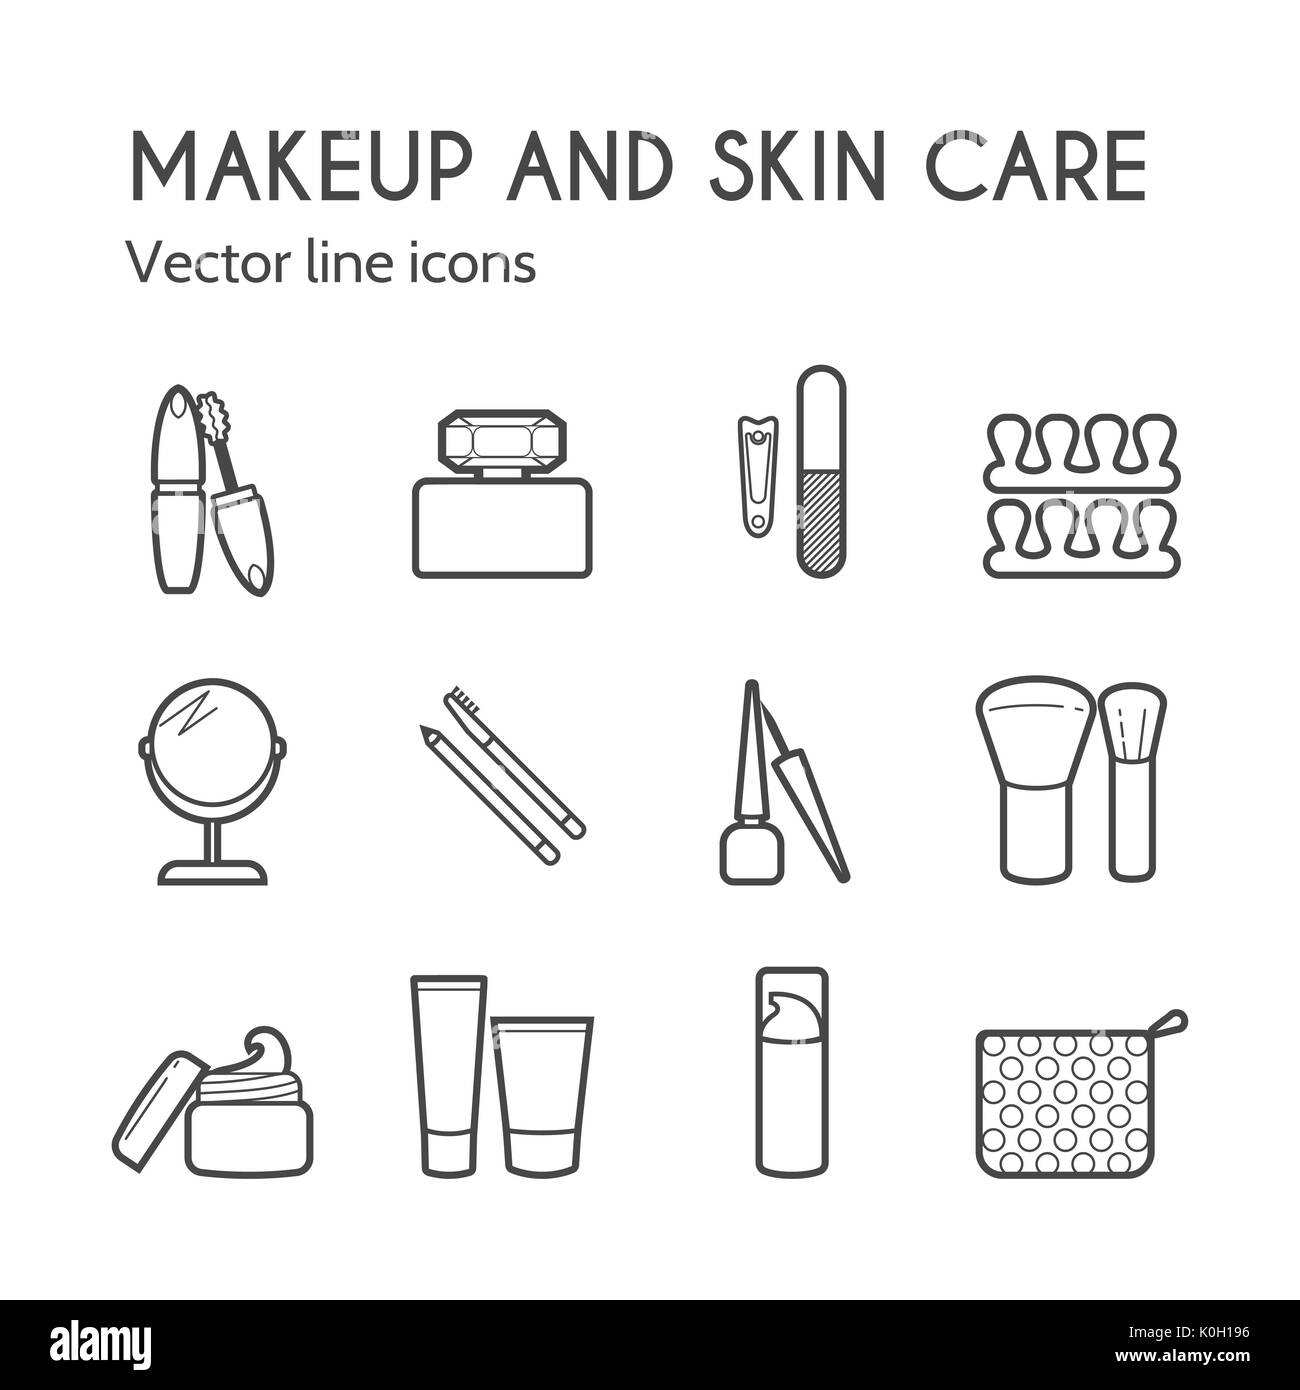 Makeup skin care simple line icons. Mascara, lipstick, powder, eye shadow, perfume, cream, foundation, eyeliner, mirror, hair comb and other make-up i - Stock Image